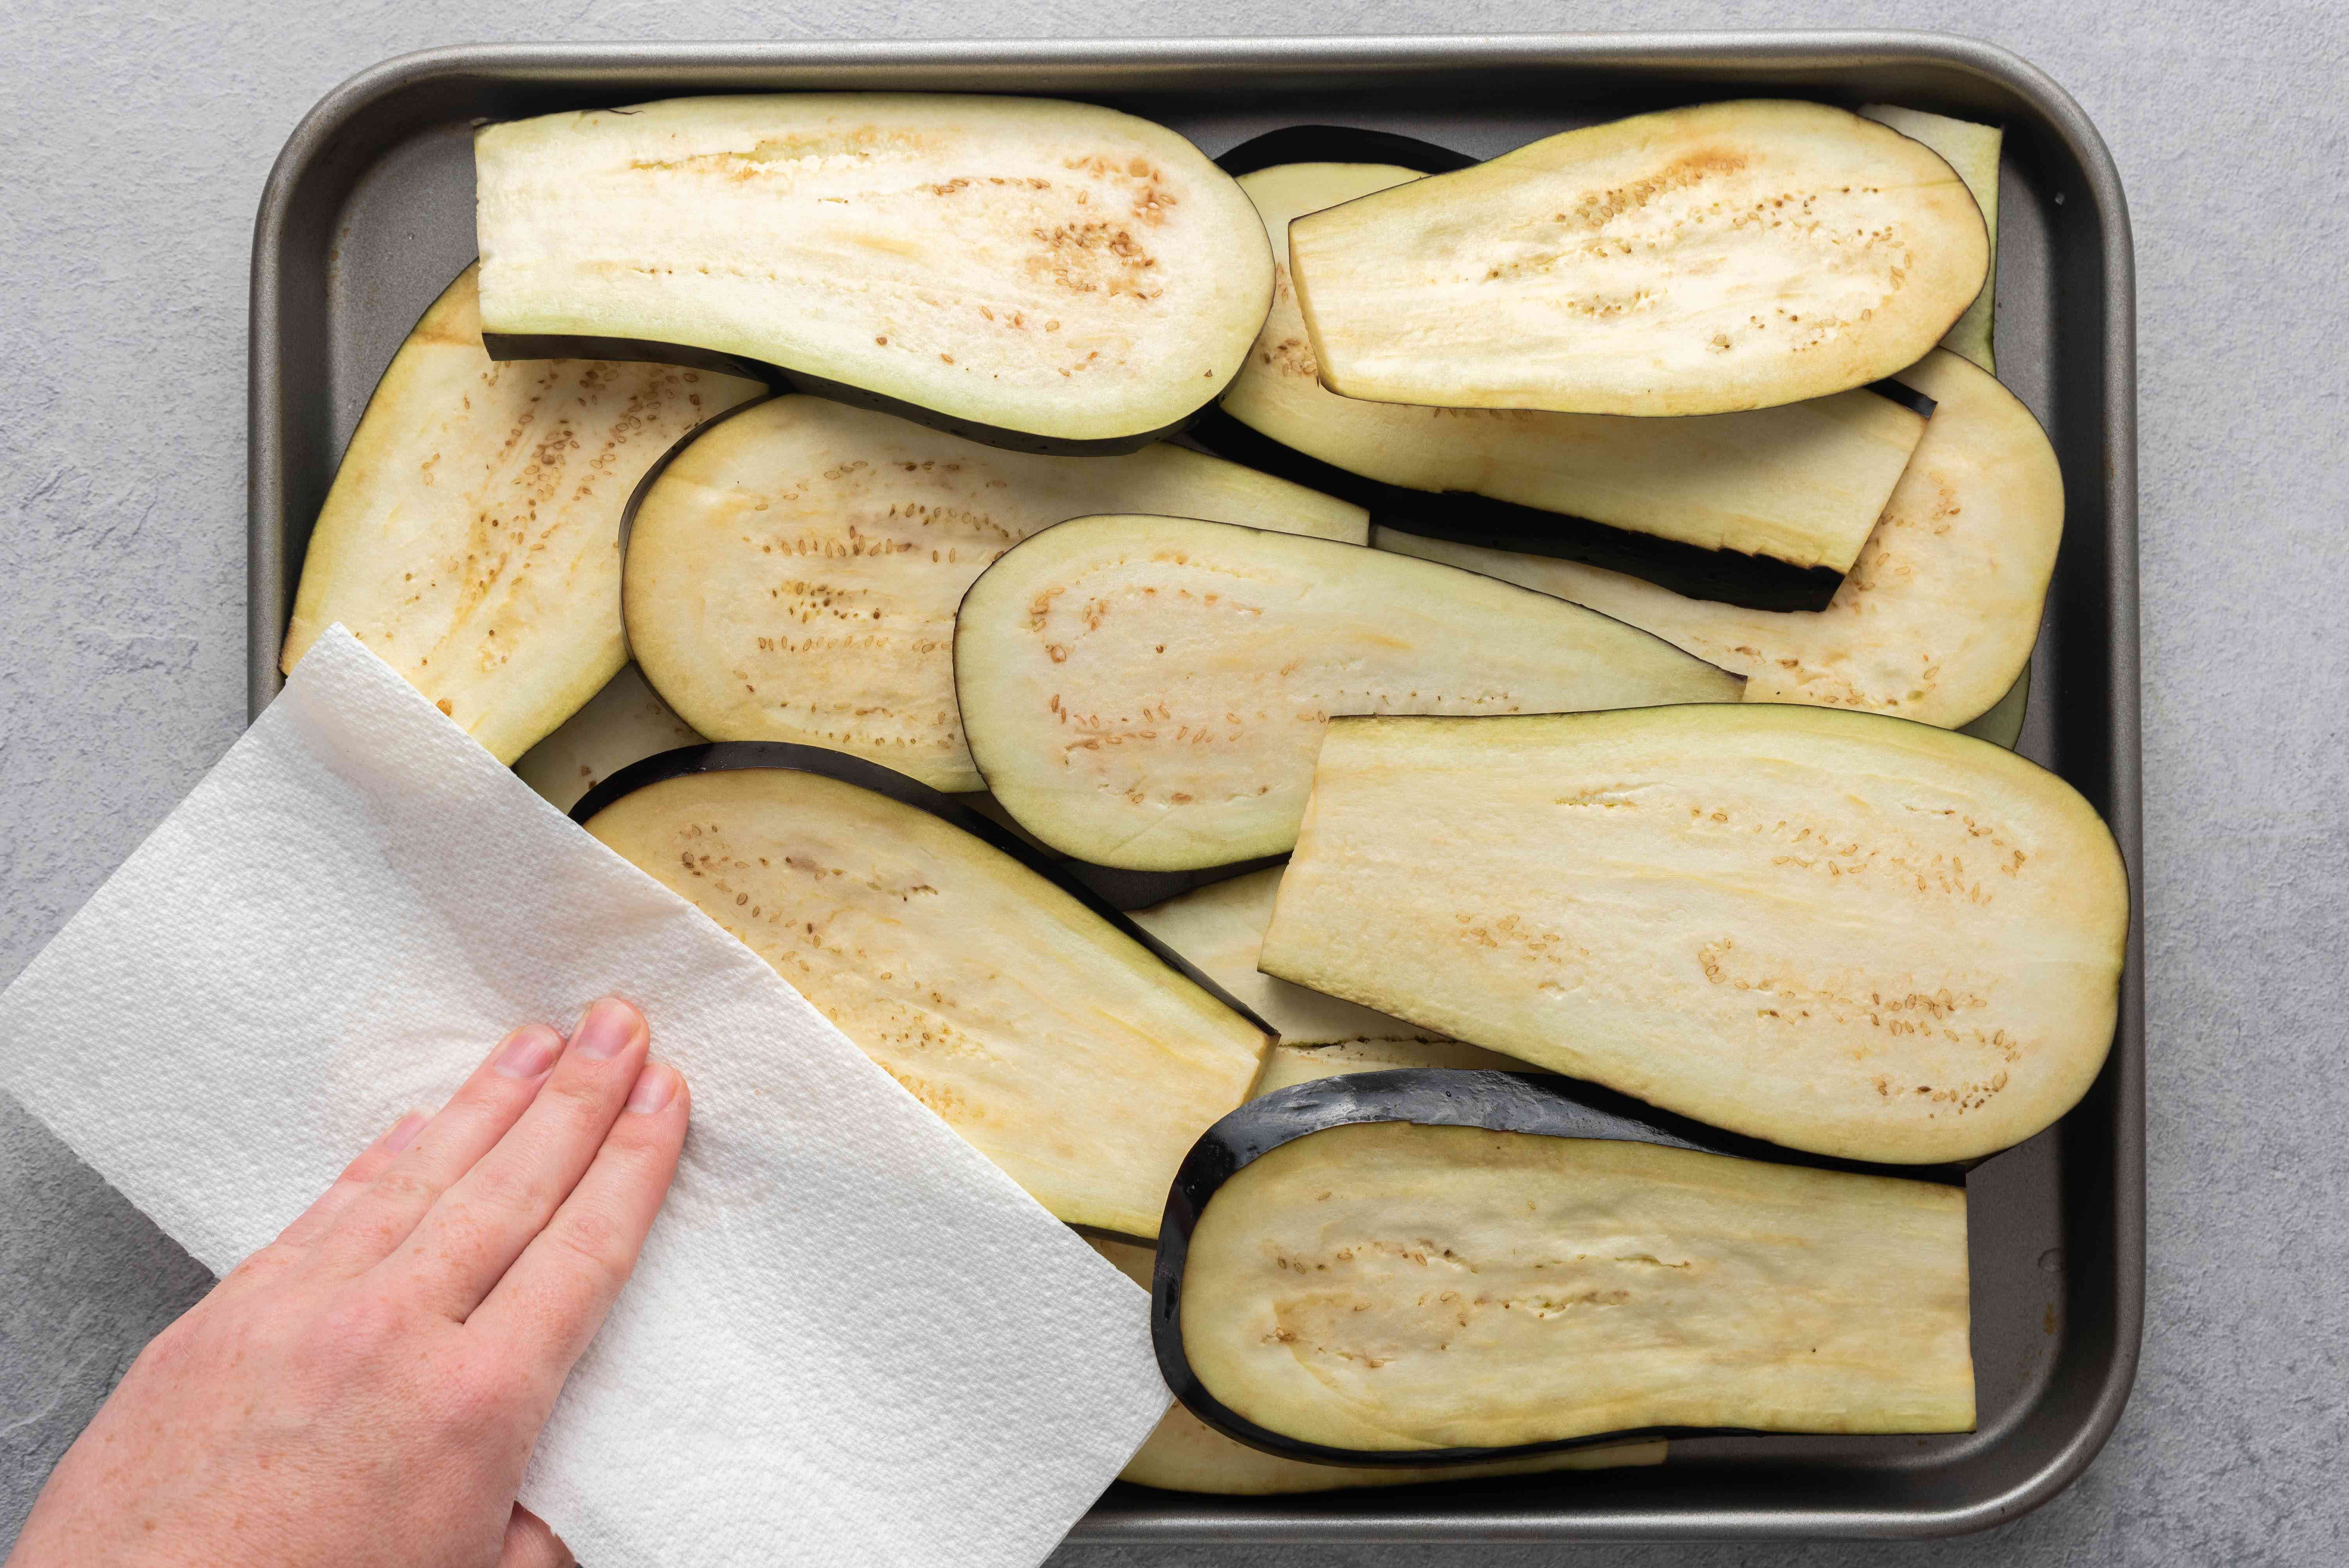 eggplants on baking sheet, patted dry with paper towel